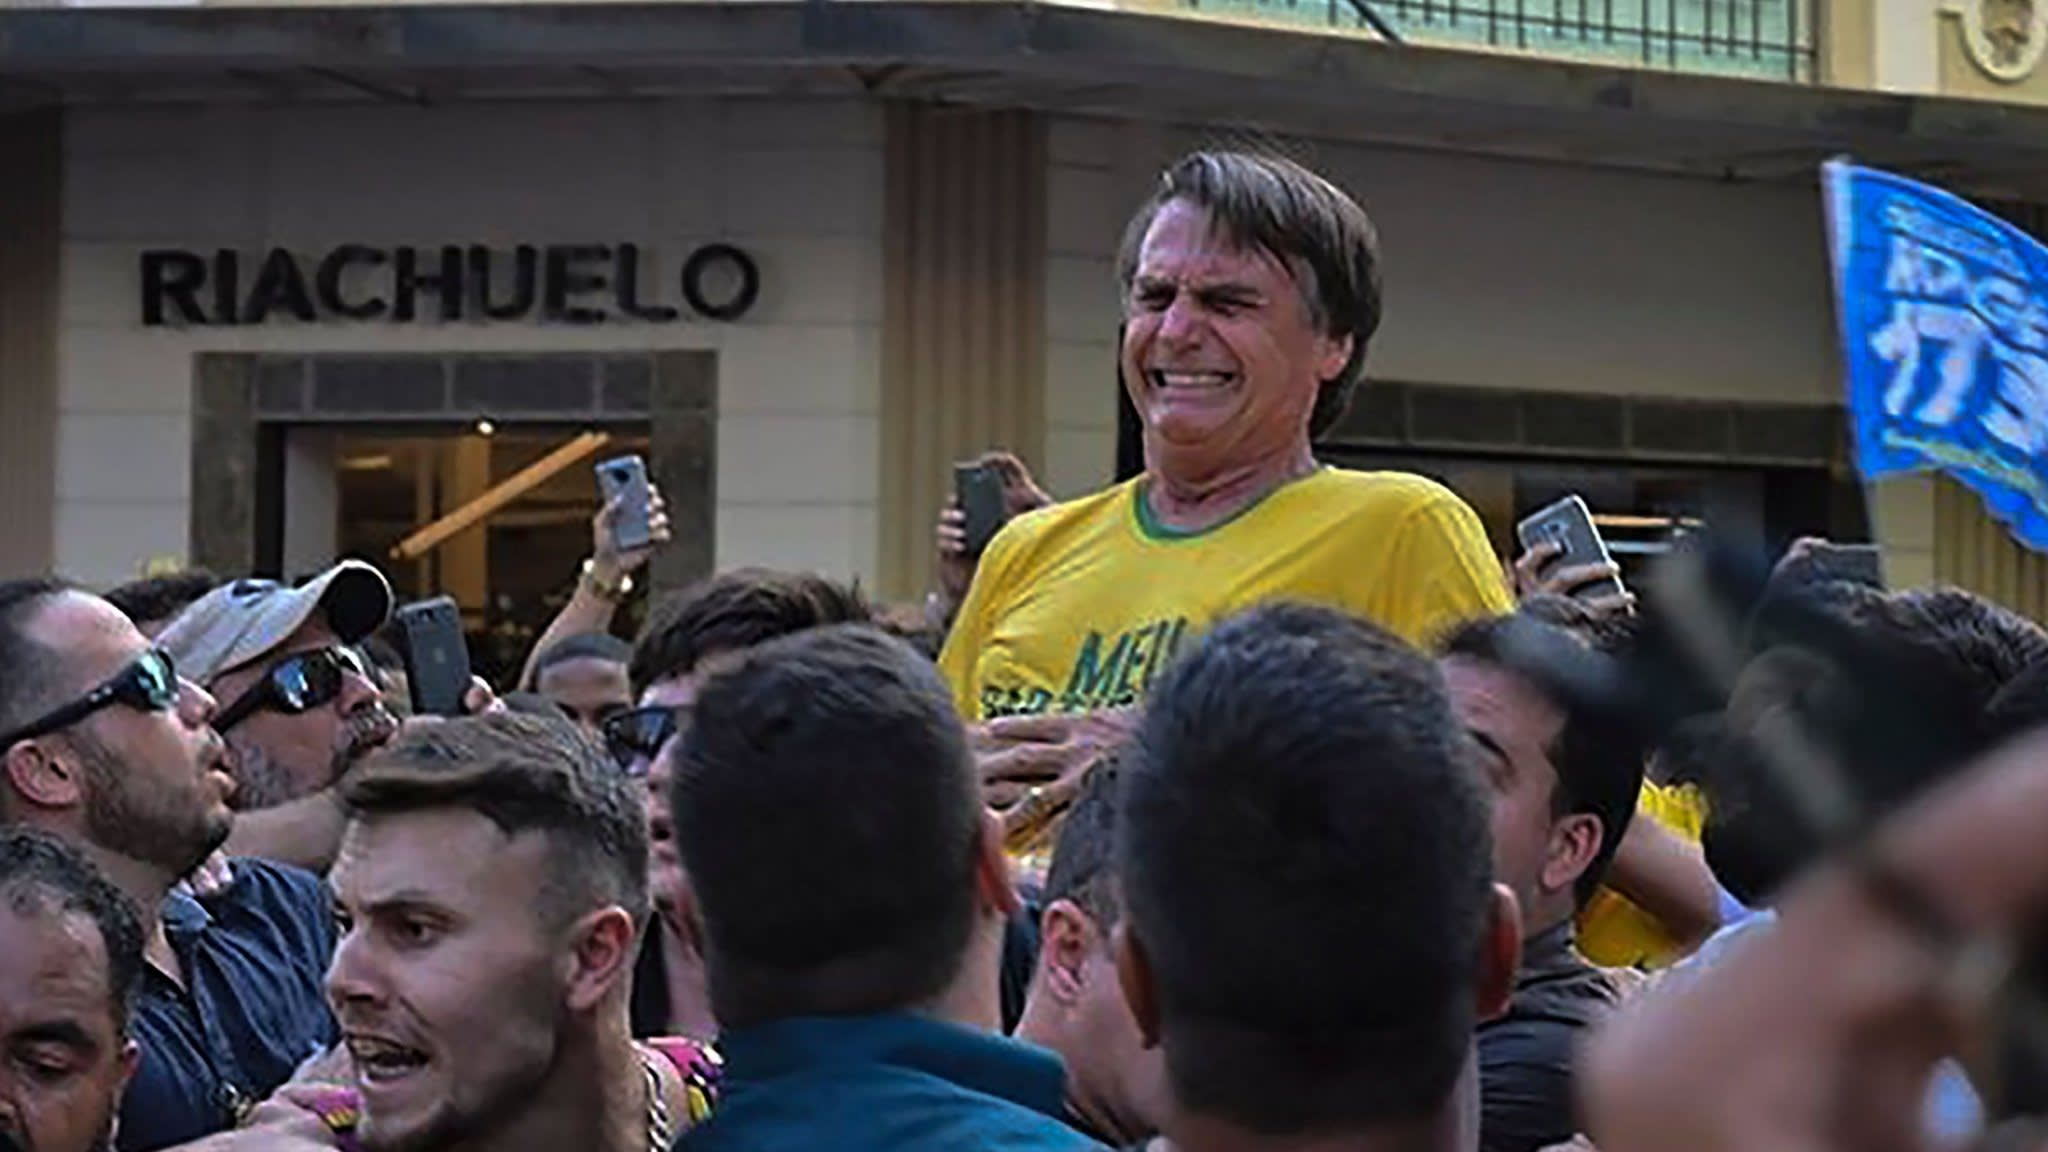 Brazilian presidential candidate Jair Bolsonaro stabbed at rally